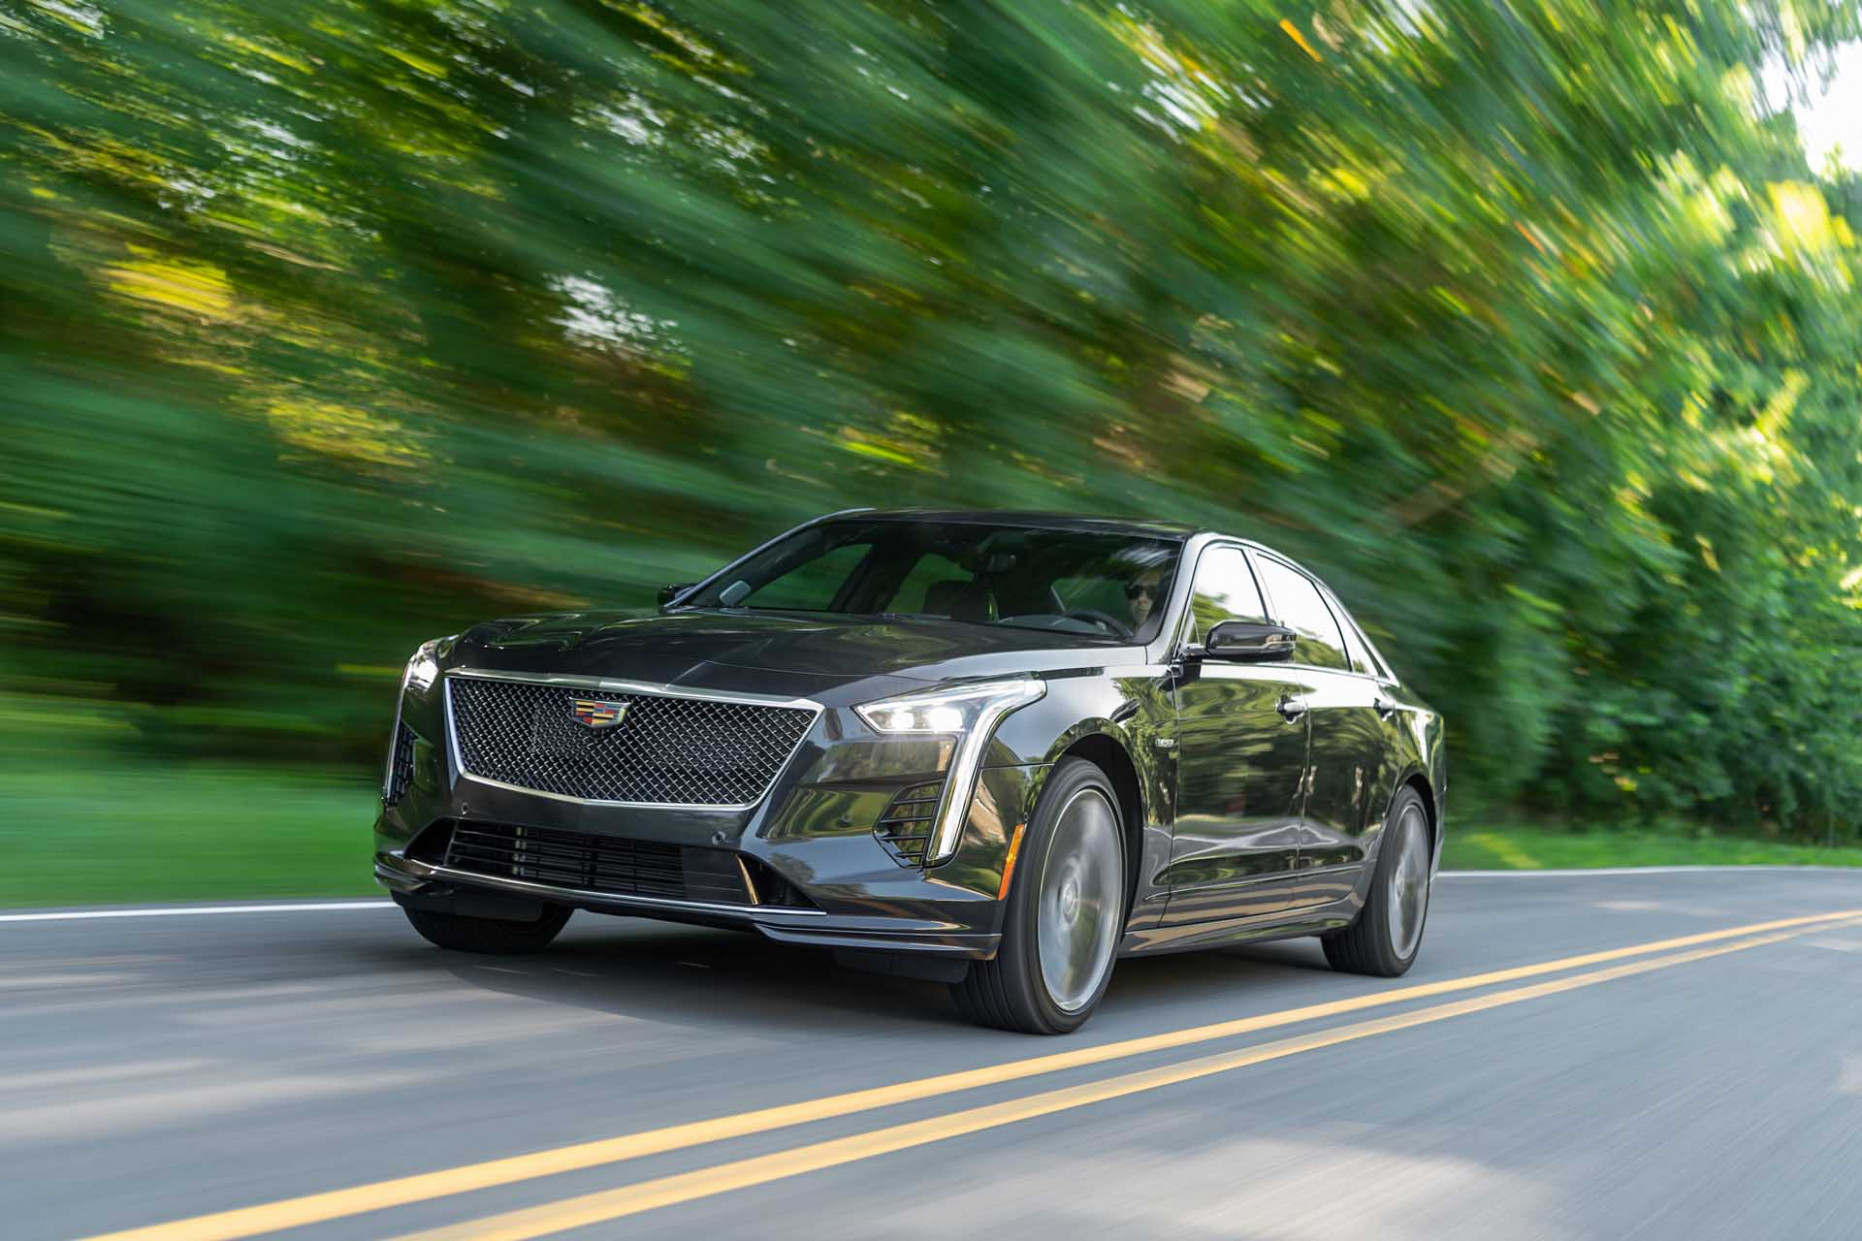 8 Cadillac CT8 Review, Ratings, Specs, Prices, and Photos - The ..